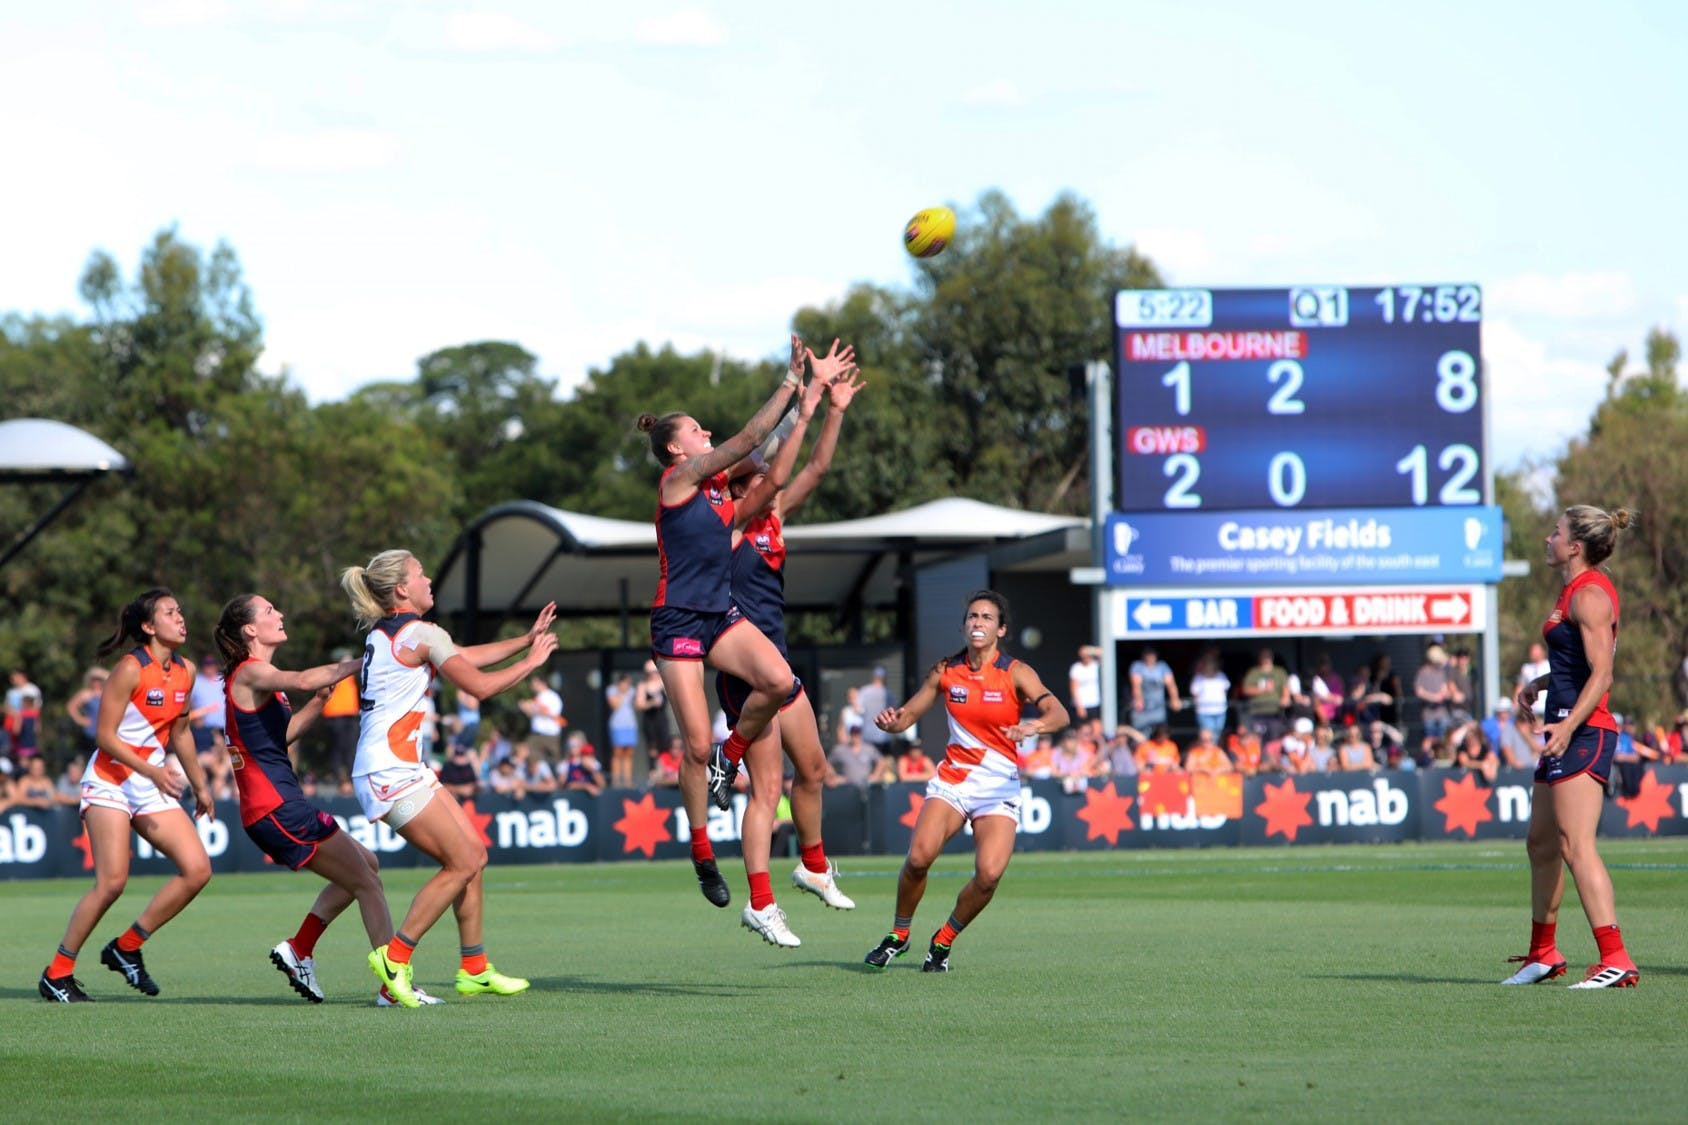 In Action: Regional AFL Oval Melbourne Demons AFLW match 2018